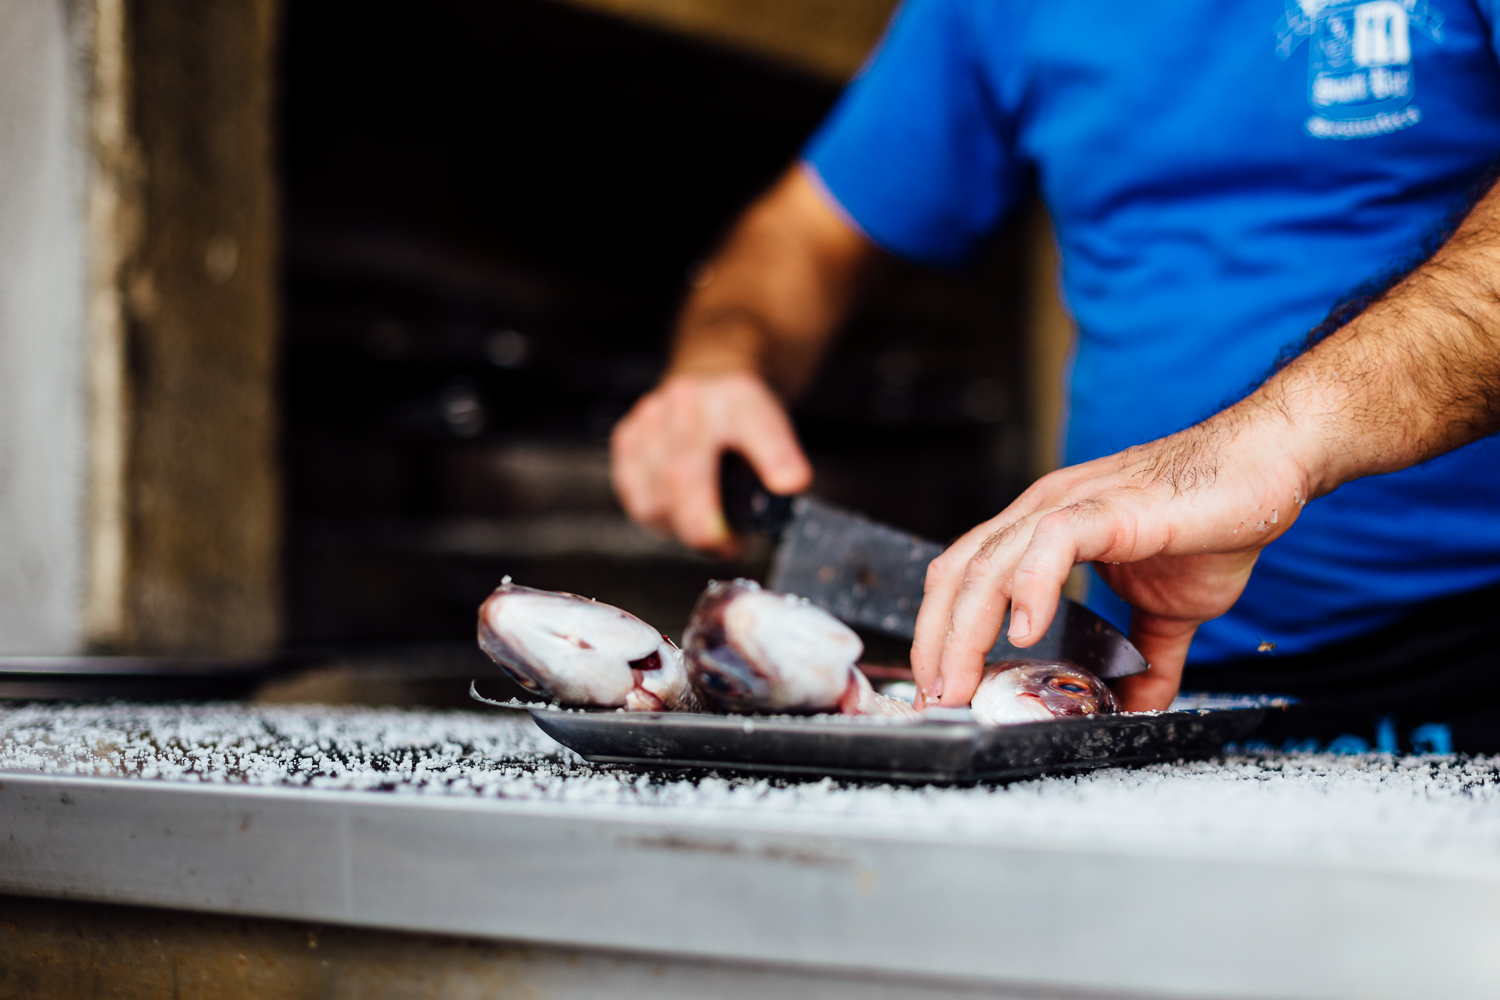 Cooking-Fish-Artesanal-Couisine-Slicing-Portugal-Travel-Photography